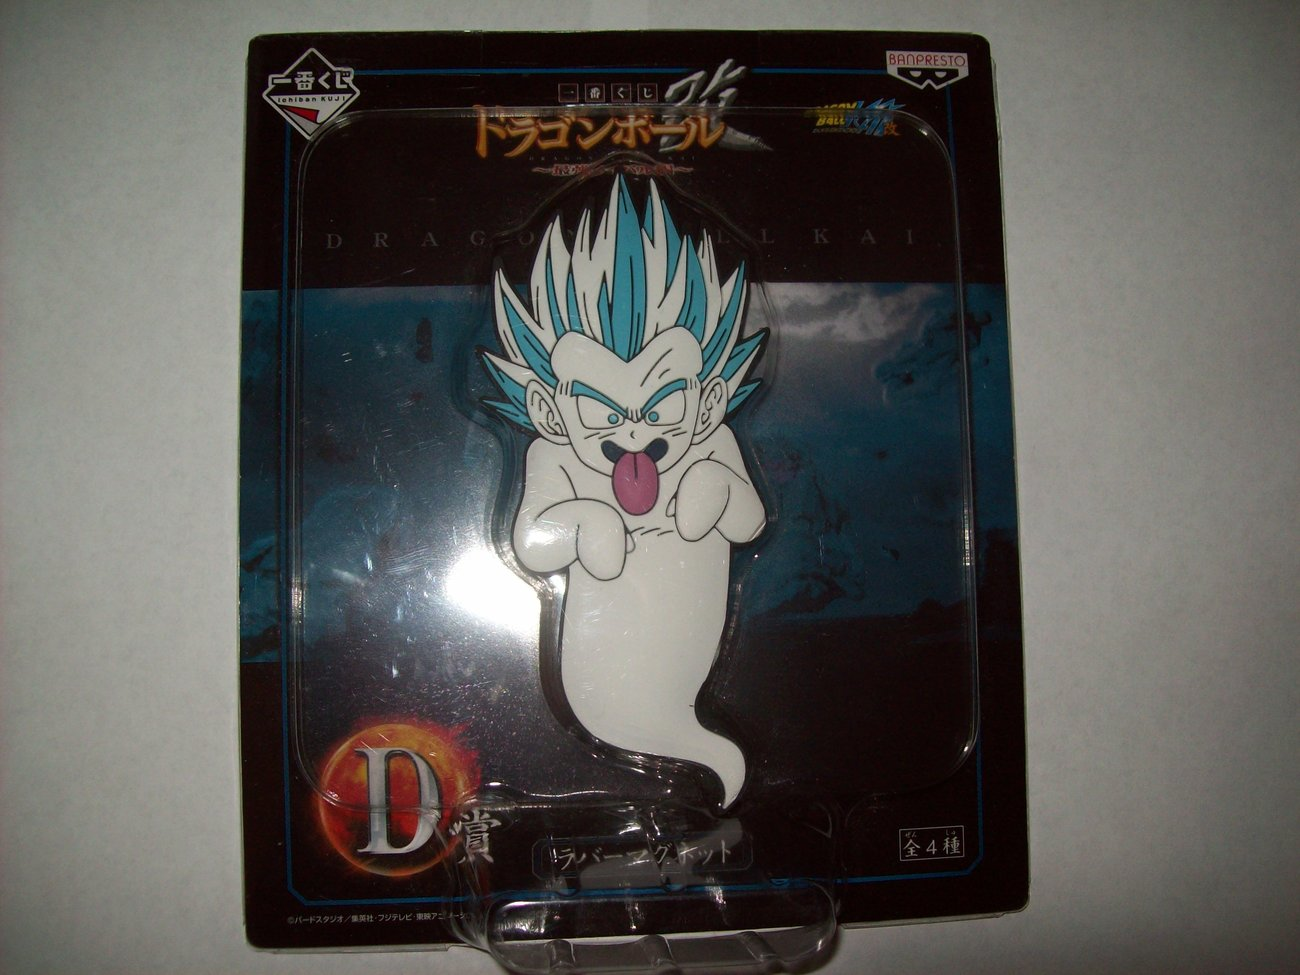 gotenks ghost magnet trunks dragonball z banpresto figure prize in japan onlynib